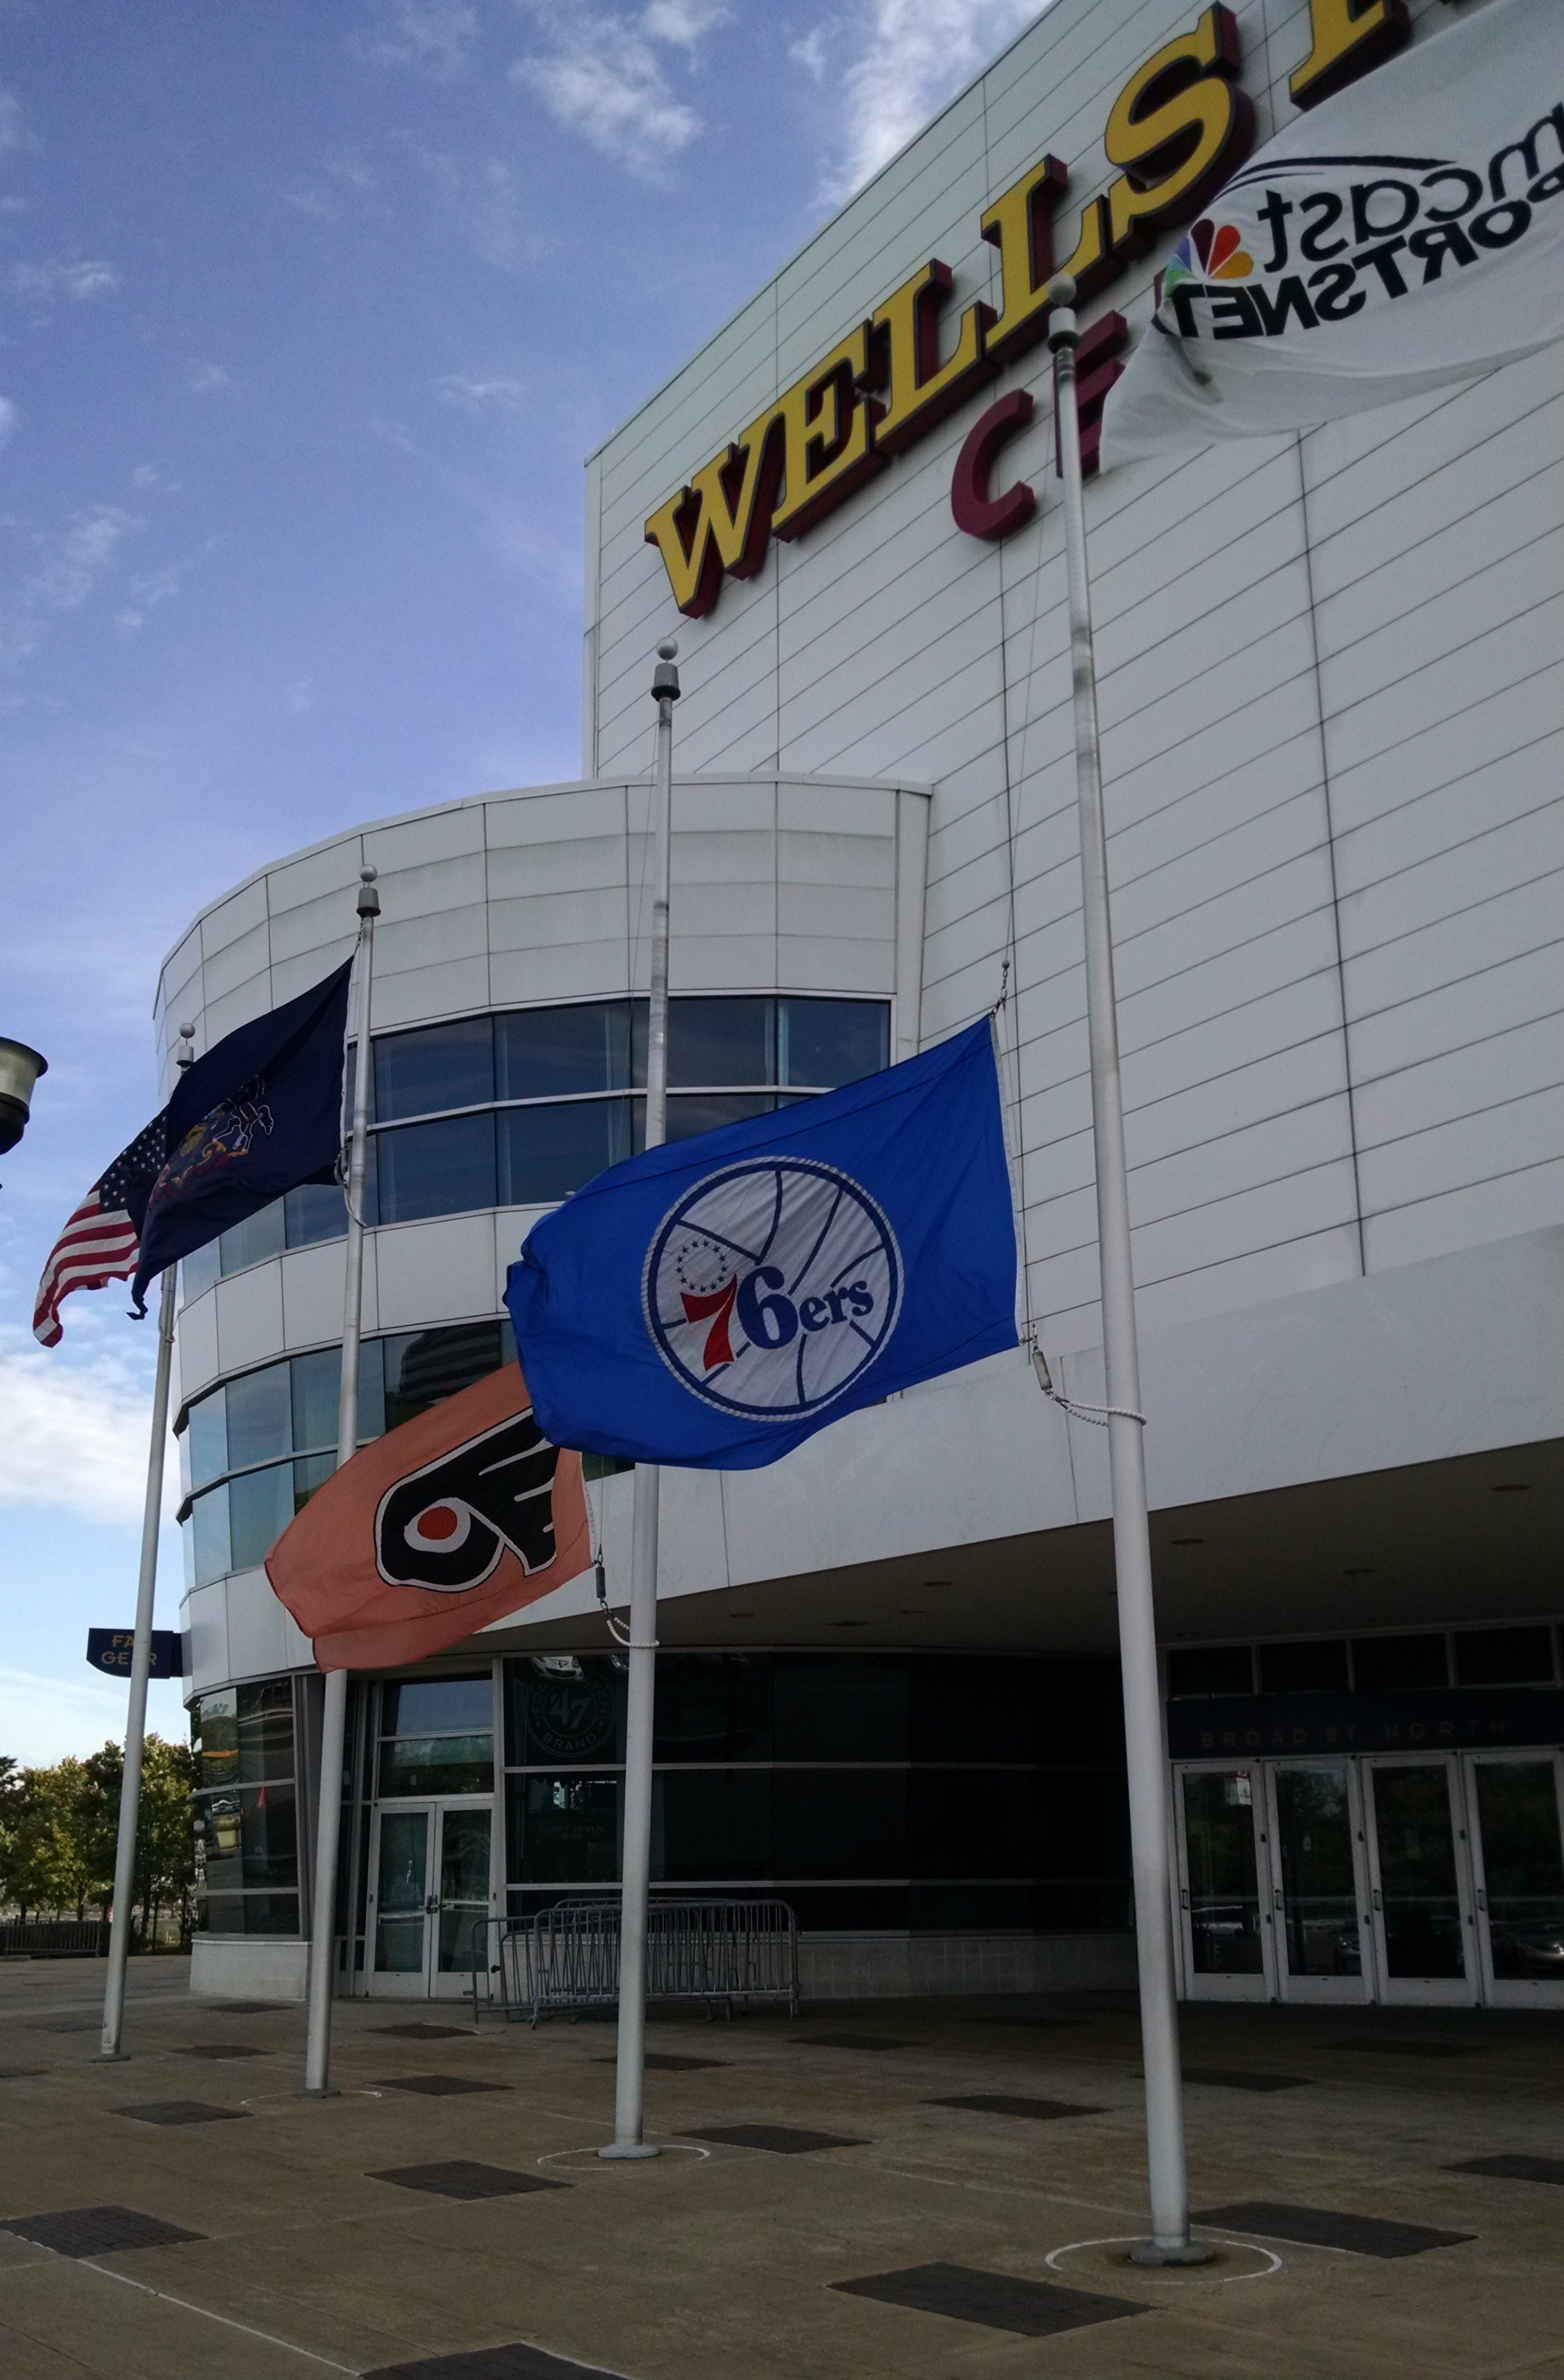 Flags fly at half-staff outside the Wells Fargo Center in Philadelphia in honor of Bill Campbell. Campbell, a sports broadcasting legend in Philadelphia, passed away on October 6, 2014. (credit: Ike Richman)